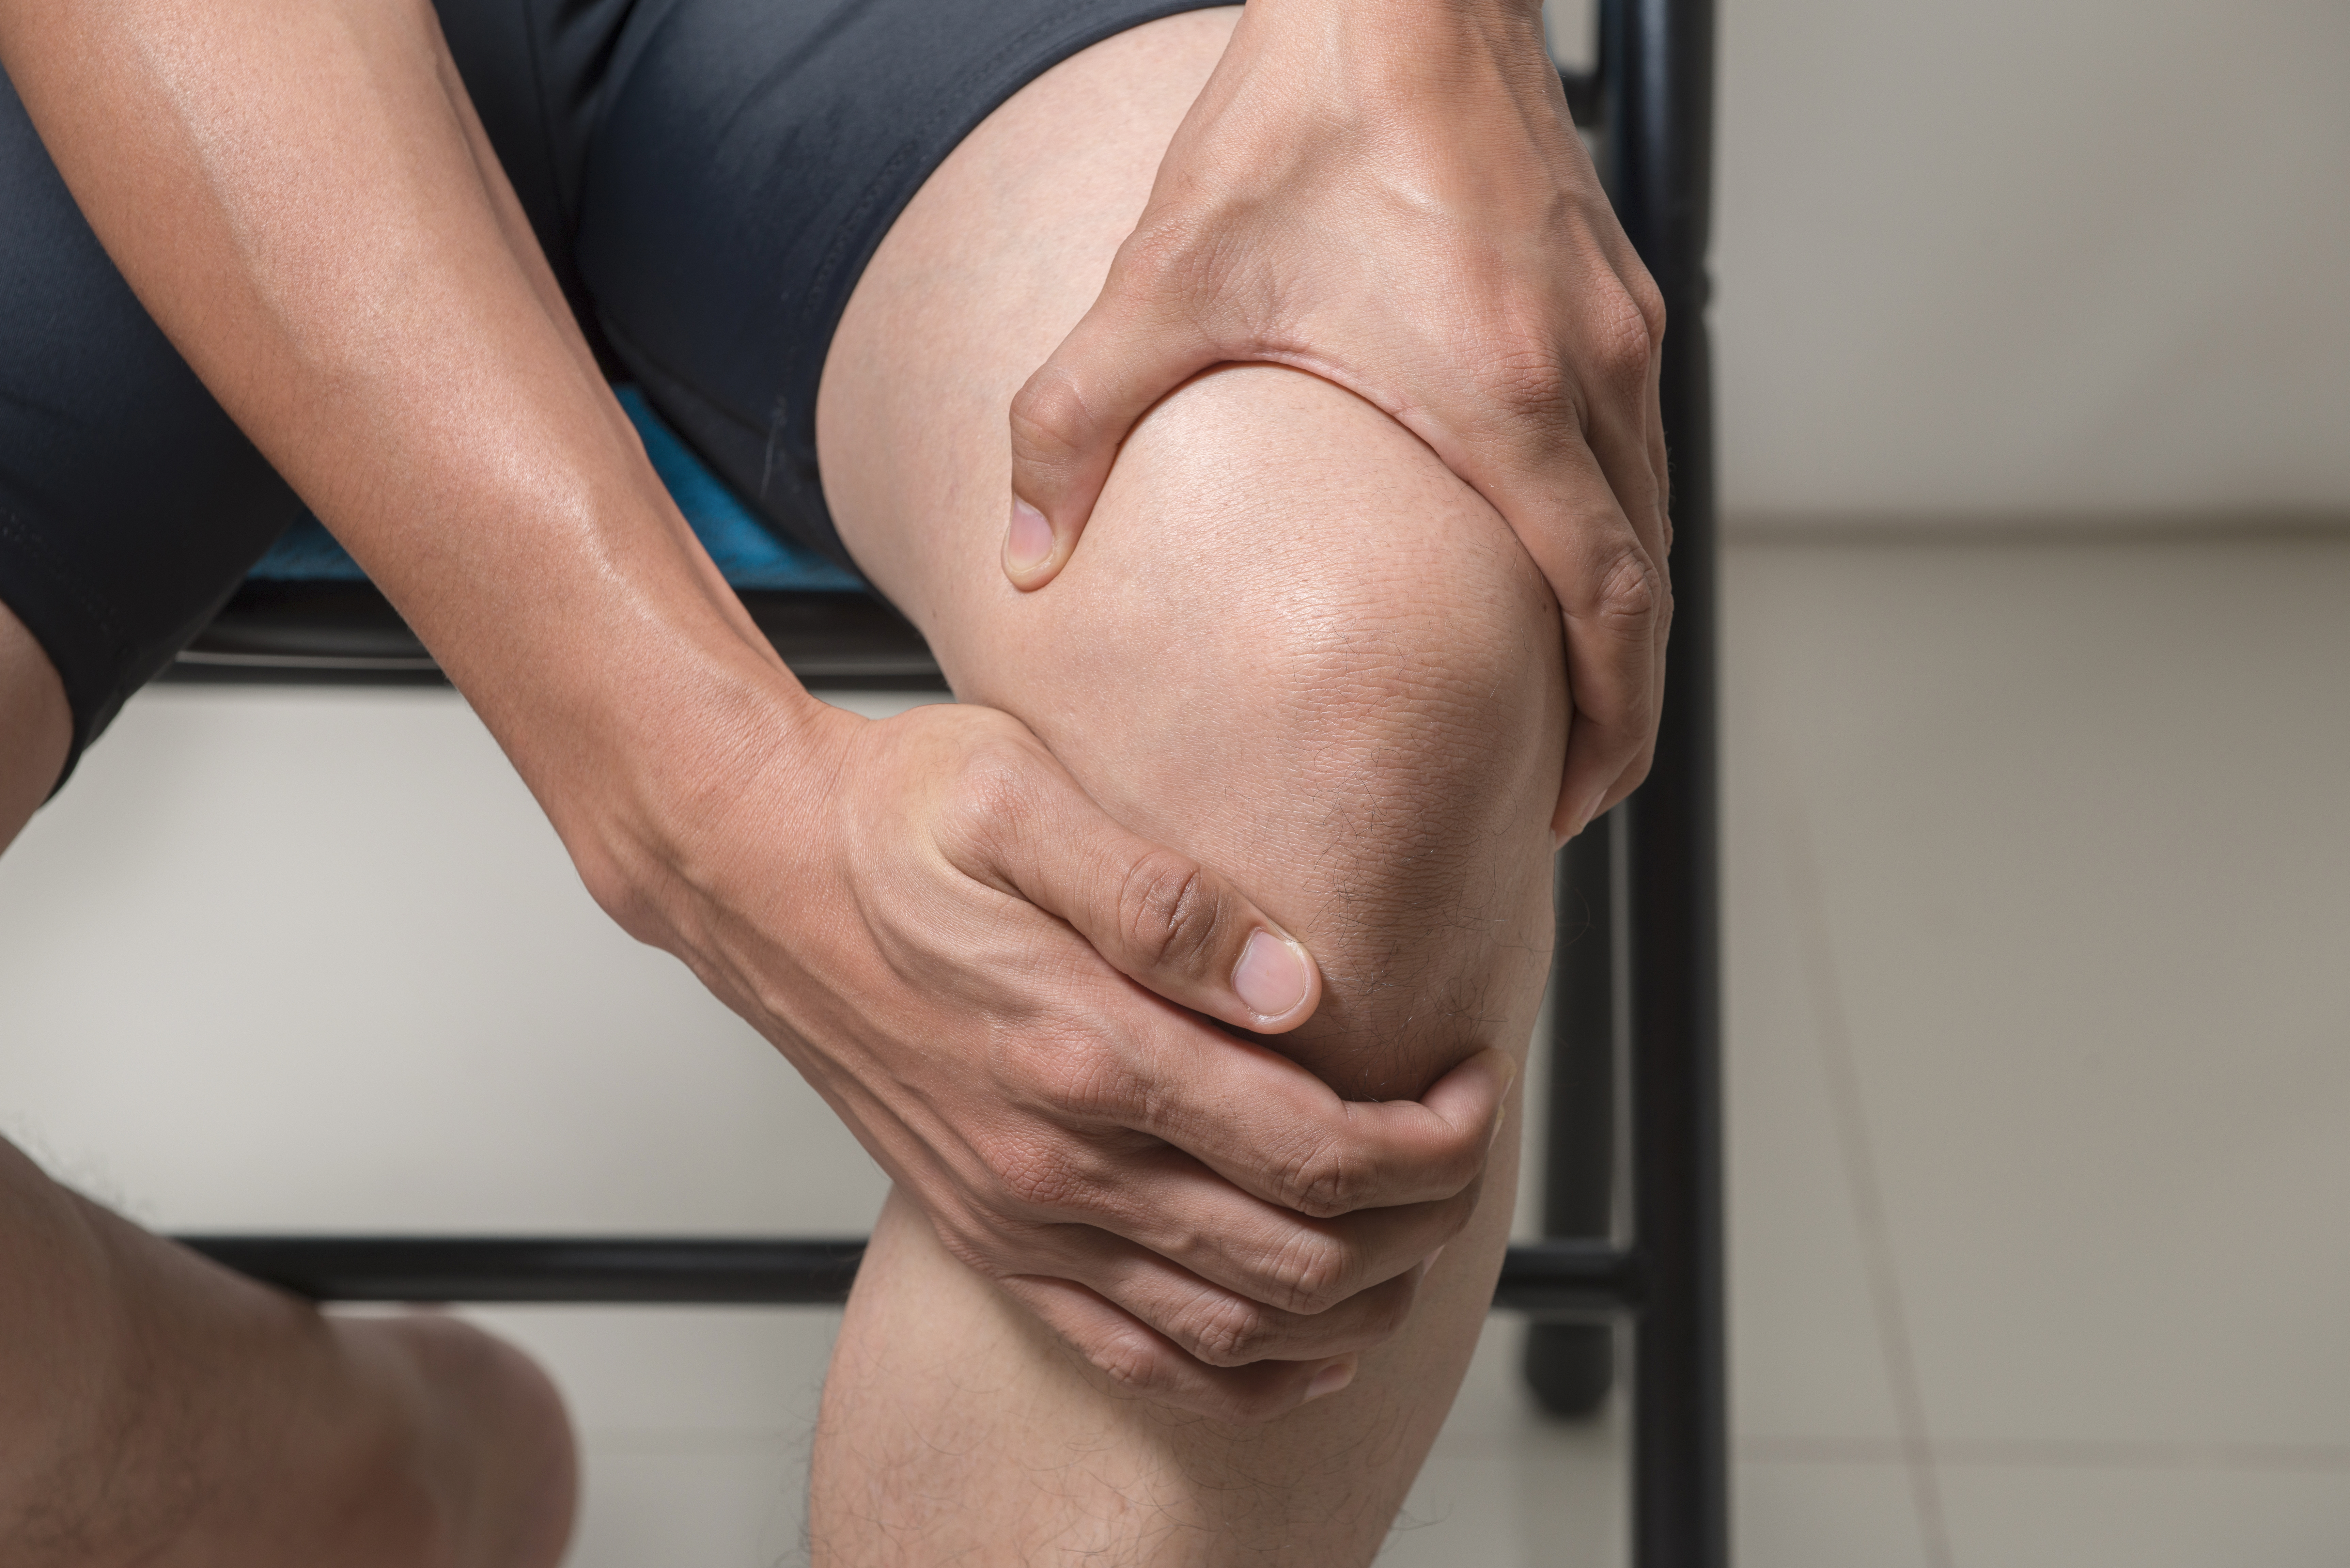 10 Tips to Relieve Joint Pain